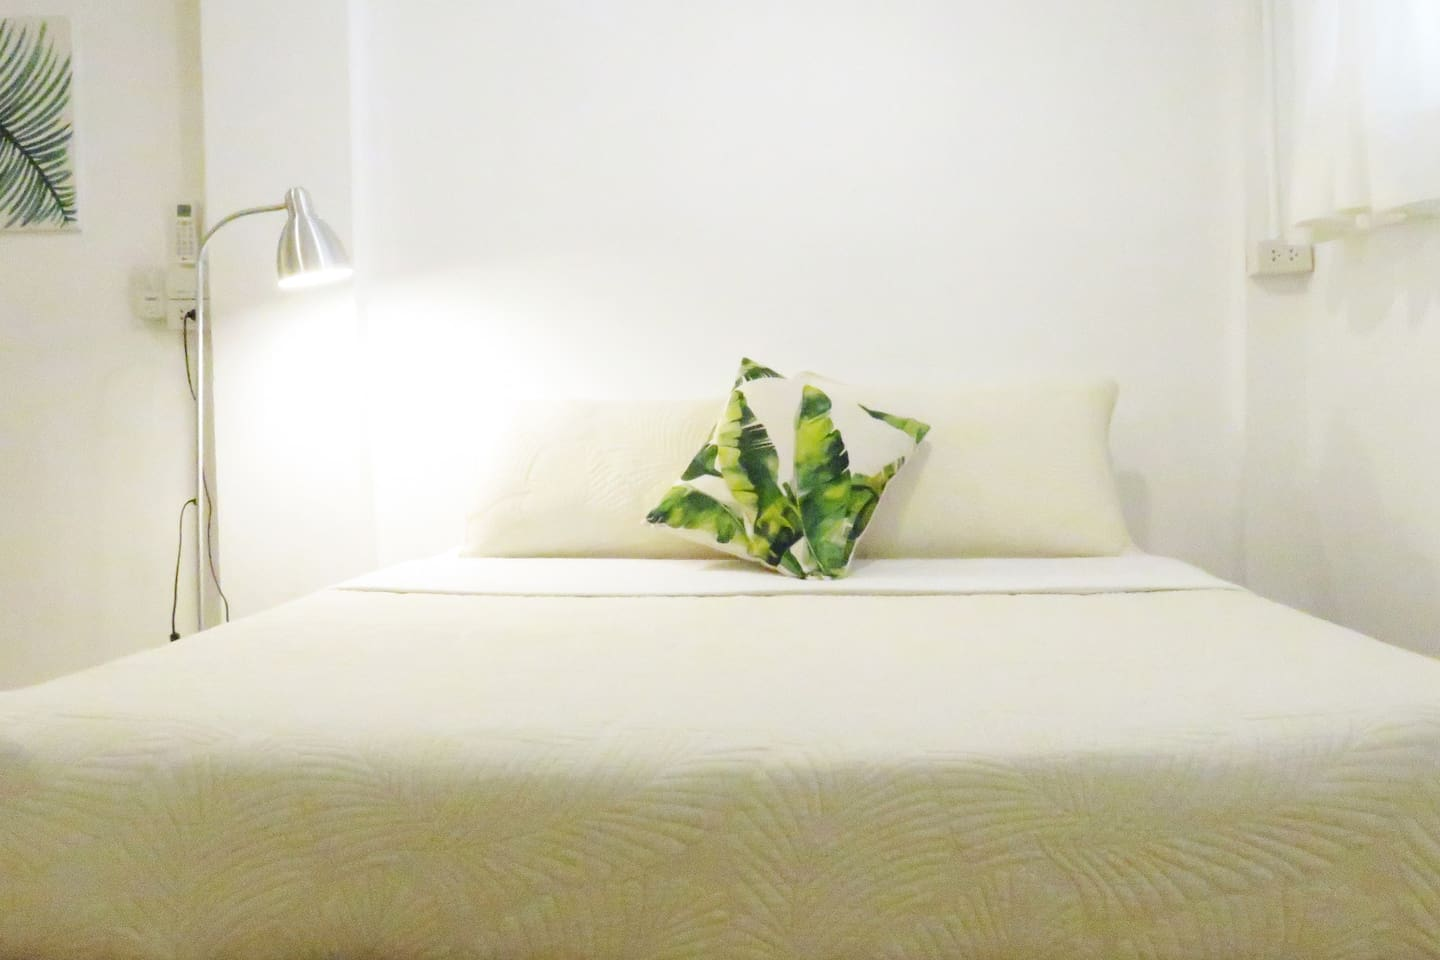 Cozy deluxe studio with queen size bed, ac, private bathroom and more